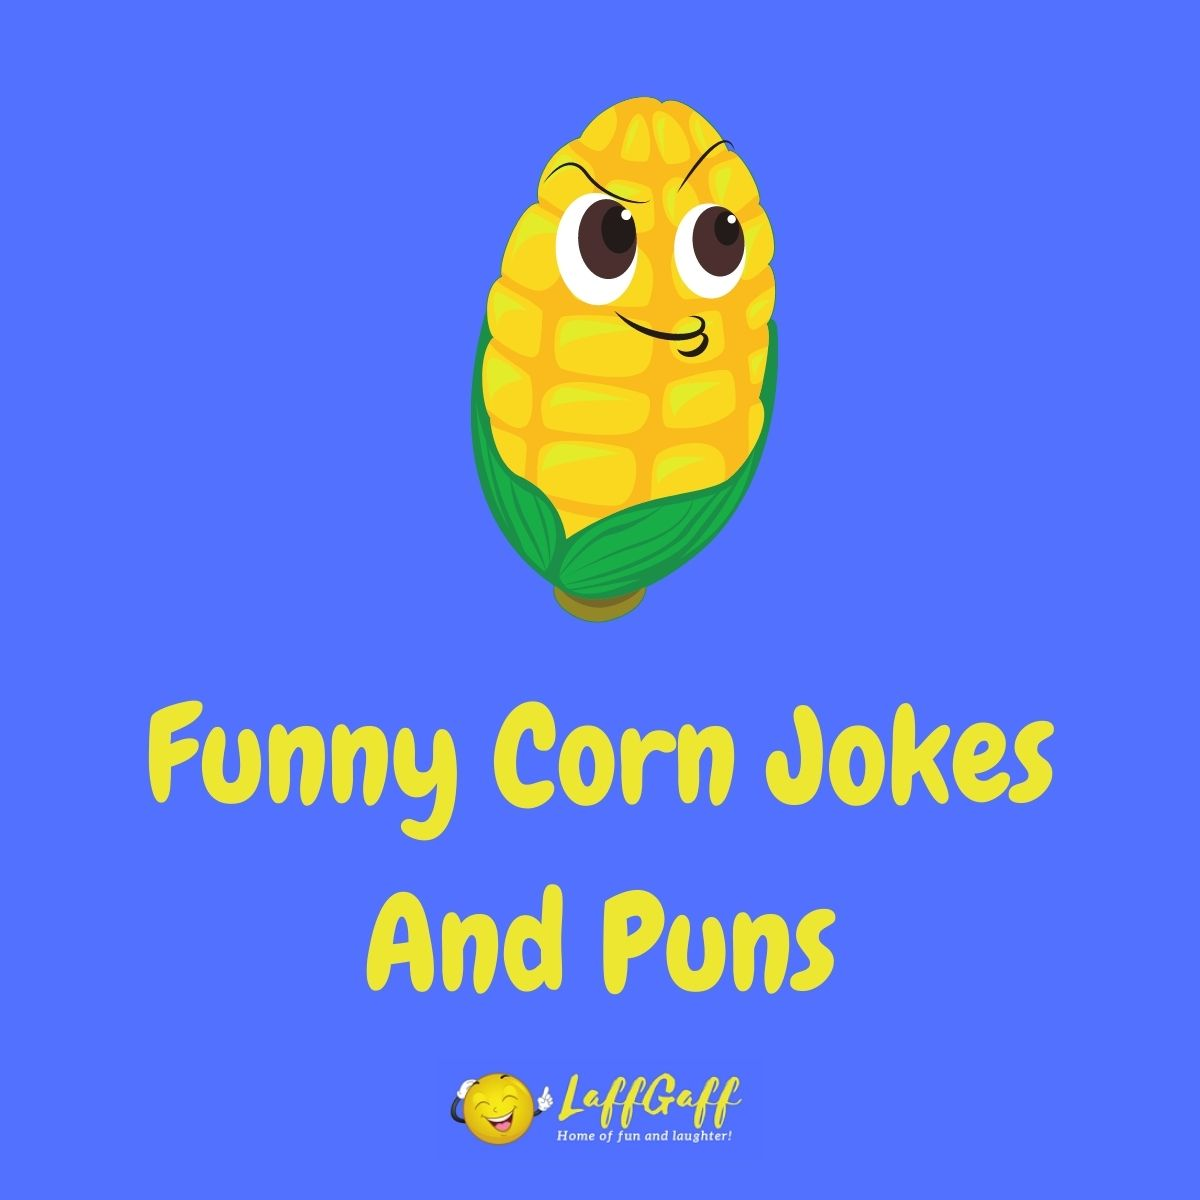 Featured image for a page of funny corn jokes and puns.